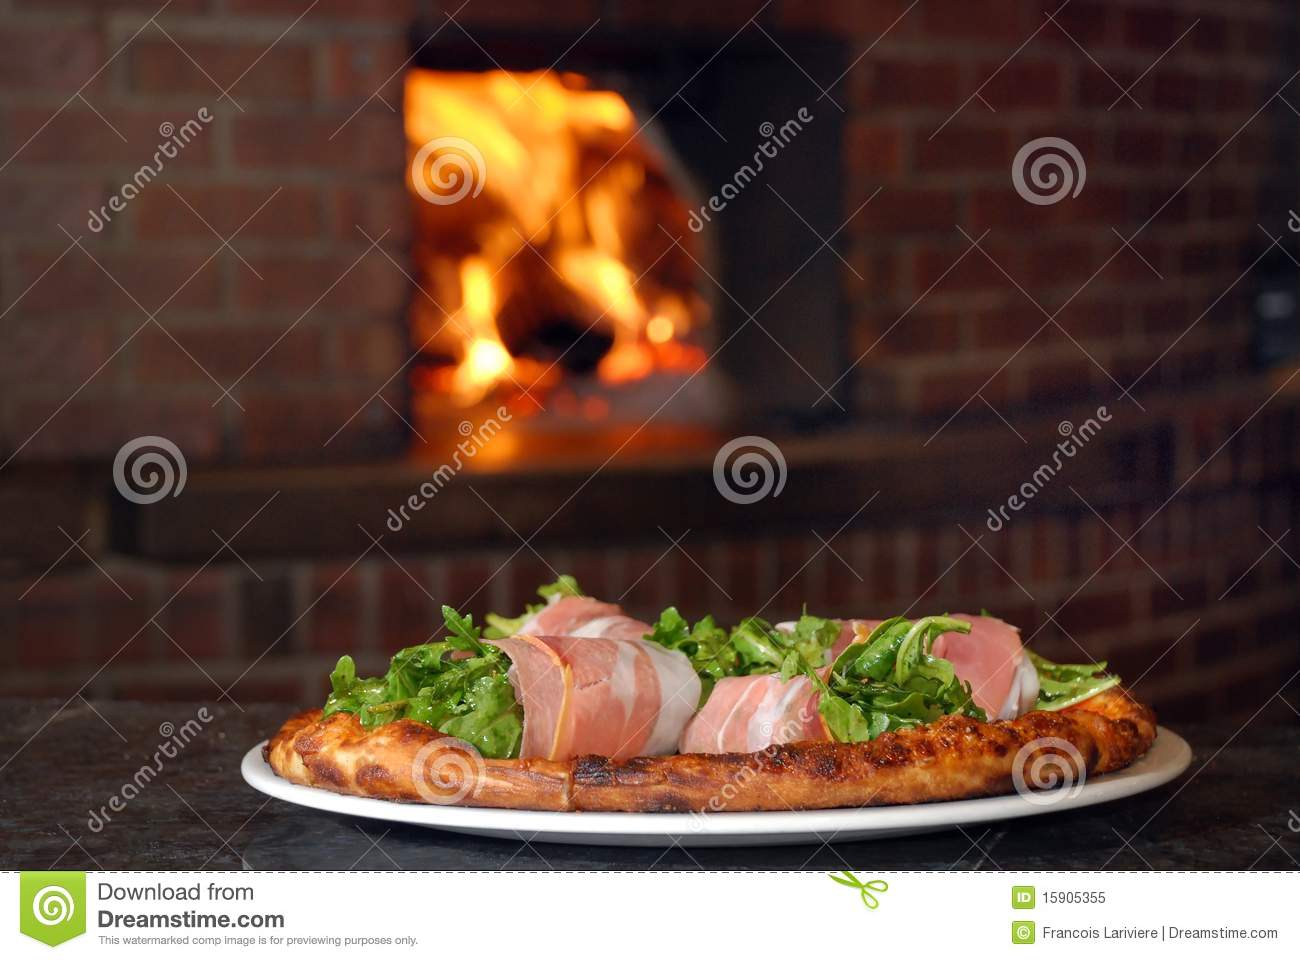 how to put a ham in the oven